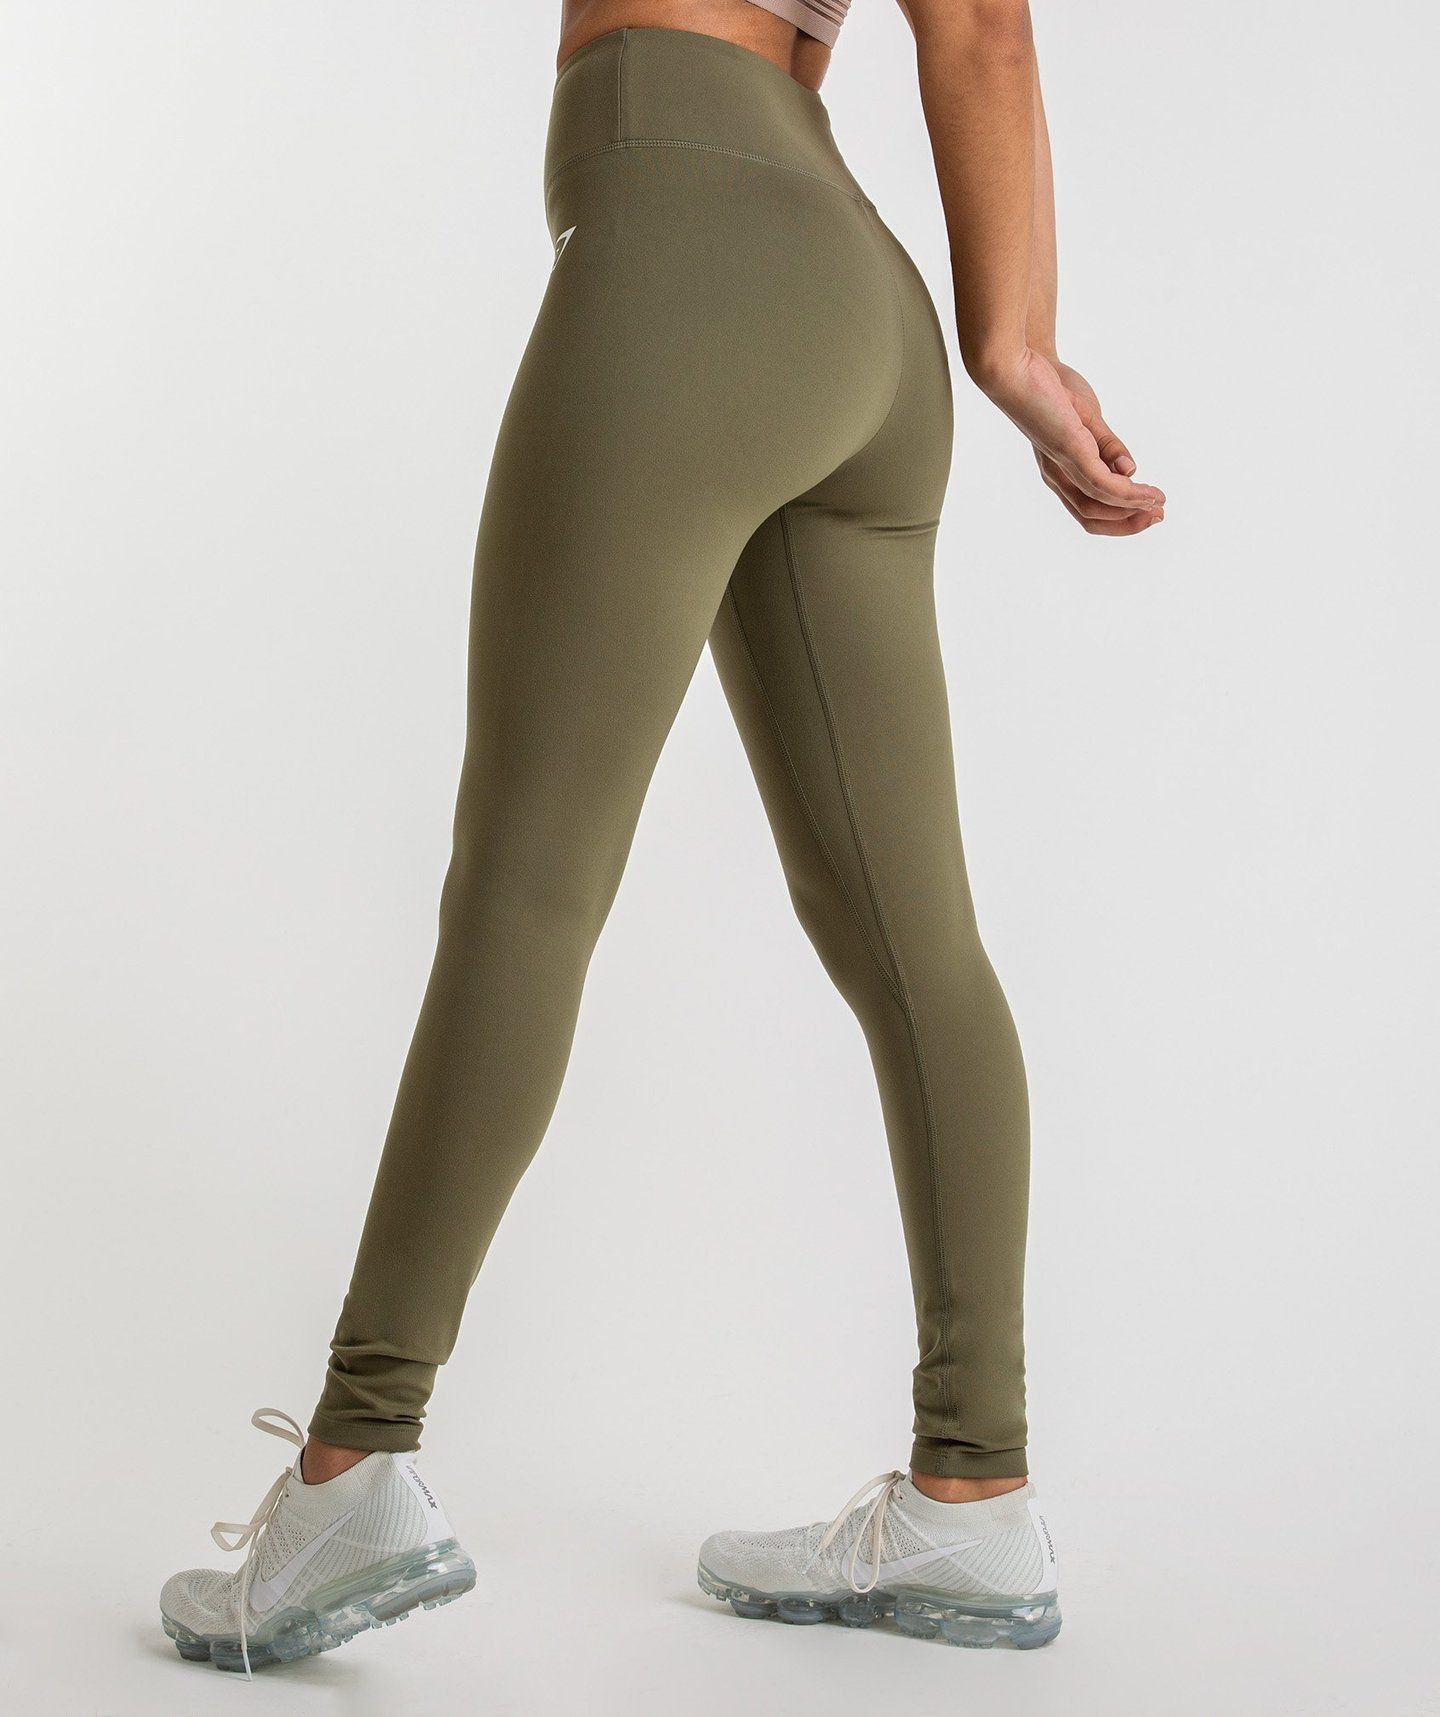 4a6a63971ca63 Gymshark Dreamy Leggings - Khaki in 2019 | f i t n e s s | Womens ...